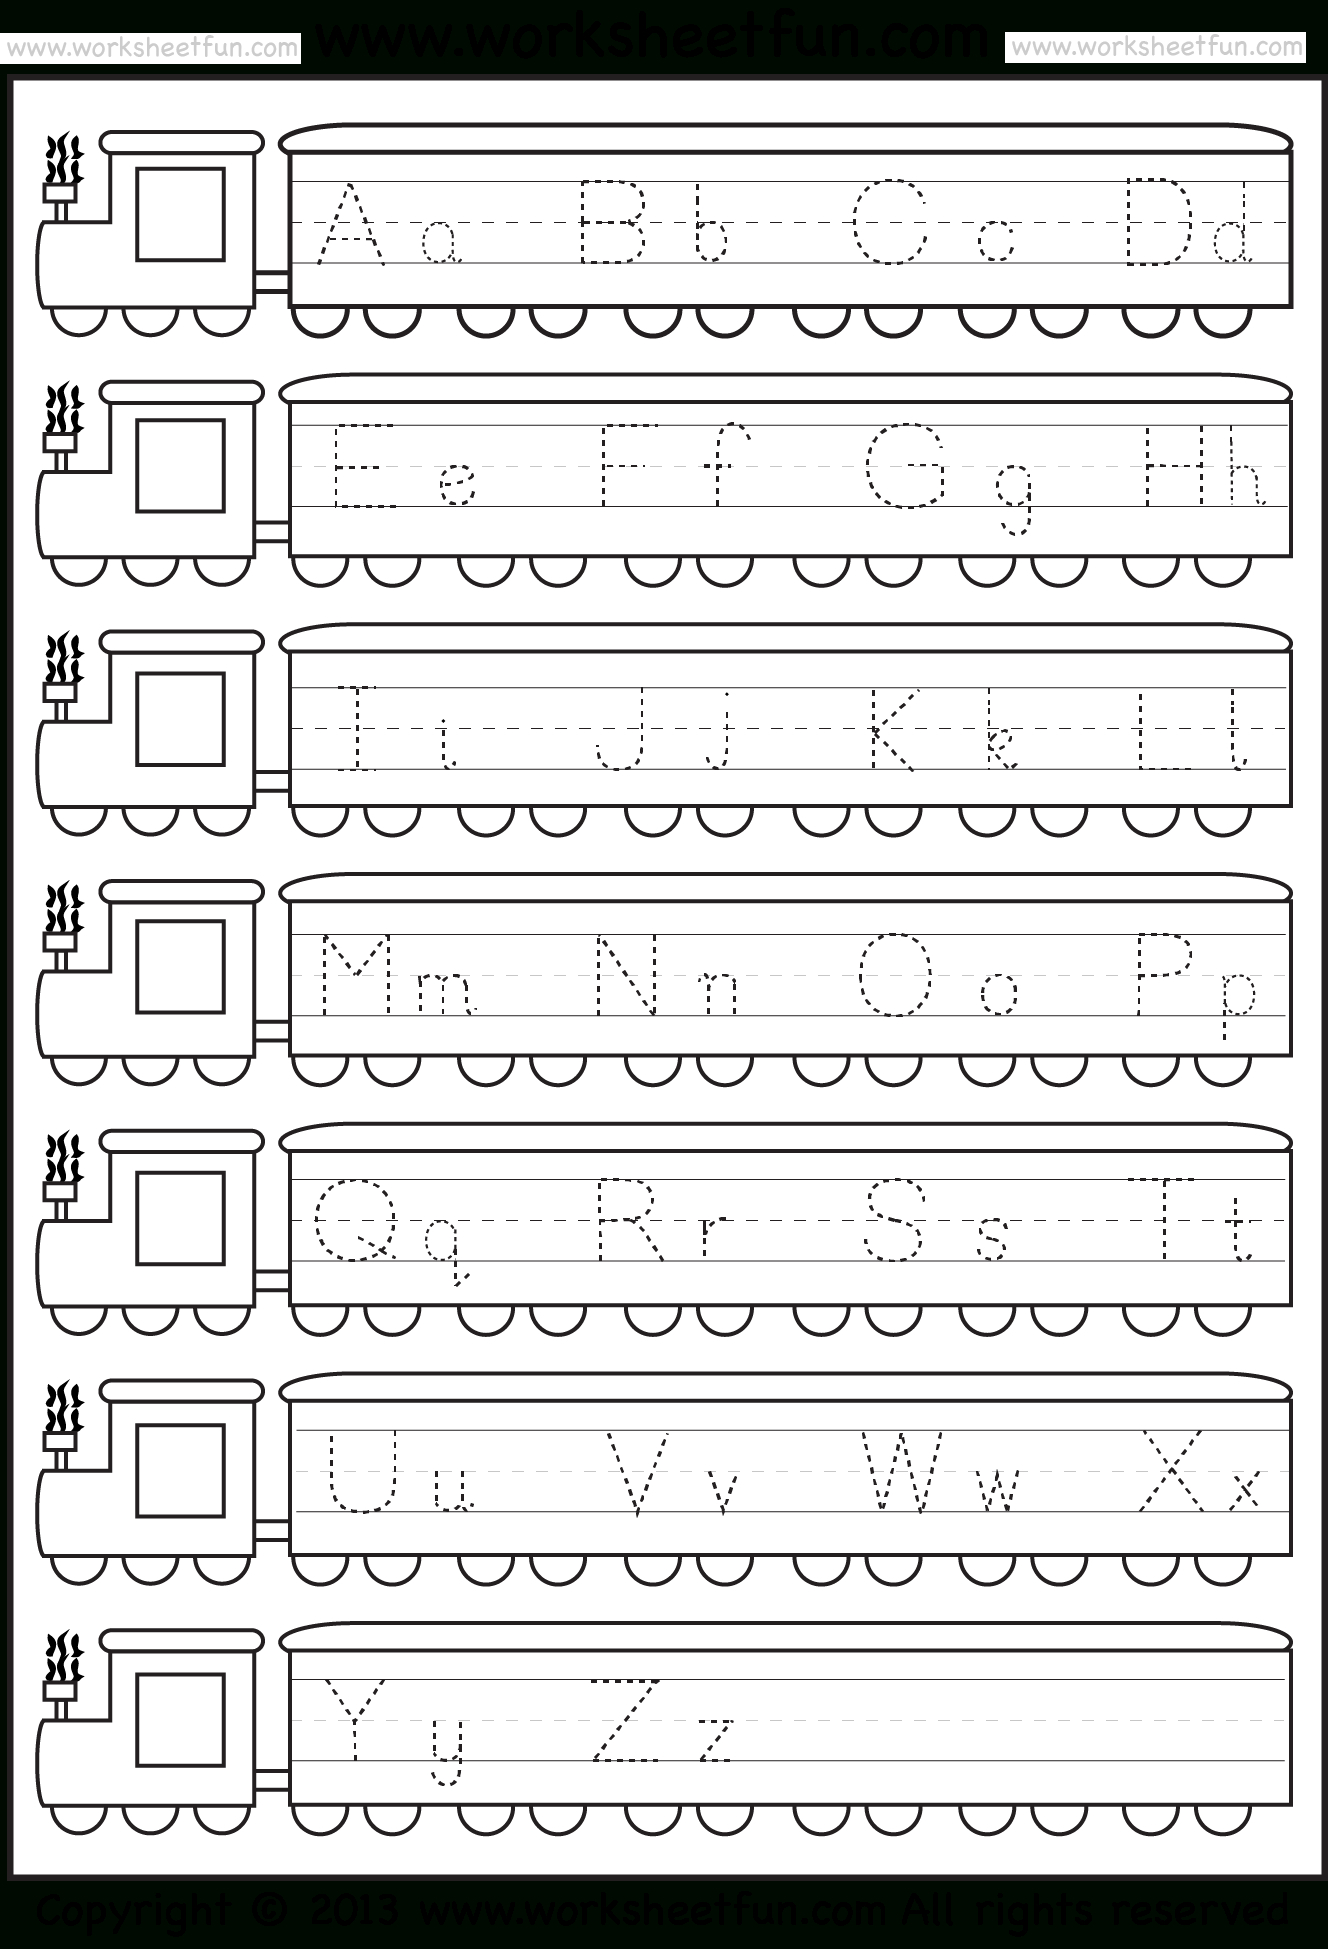 Train Letter Tracing | Letter Tracing Worksheets, Tracing regarding Alphabet Tracing Train